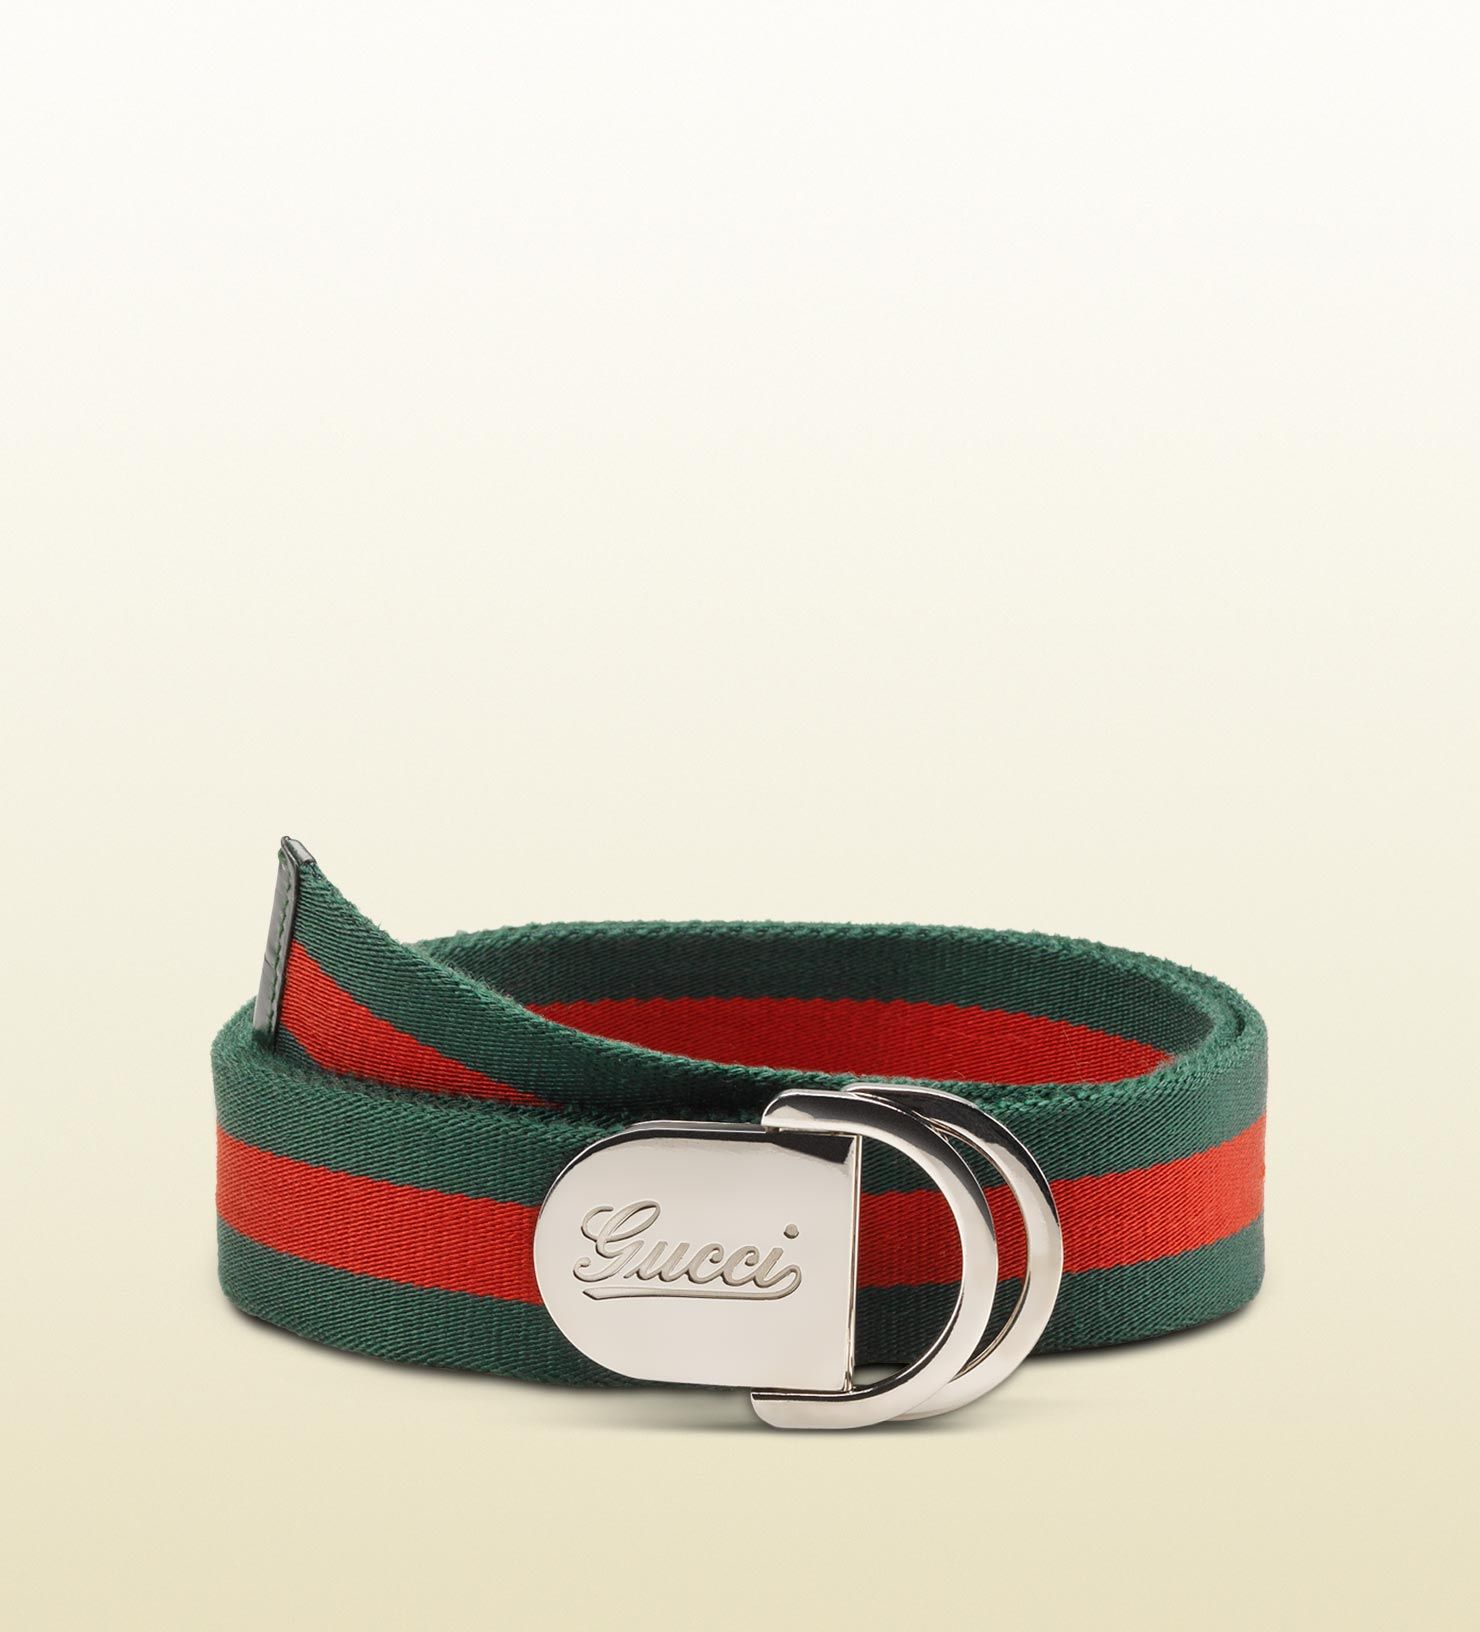 244aa9391309 belt with engraved gucci script logo and D ring buckle